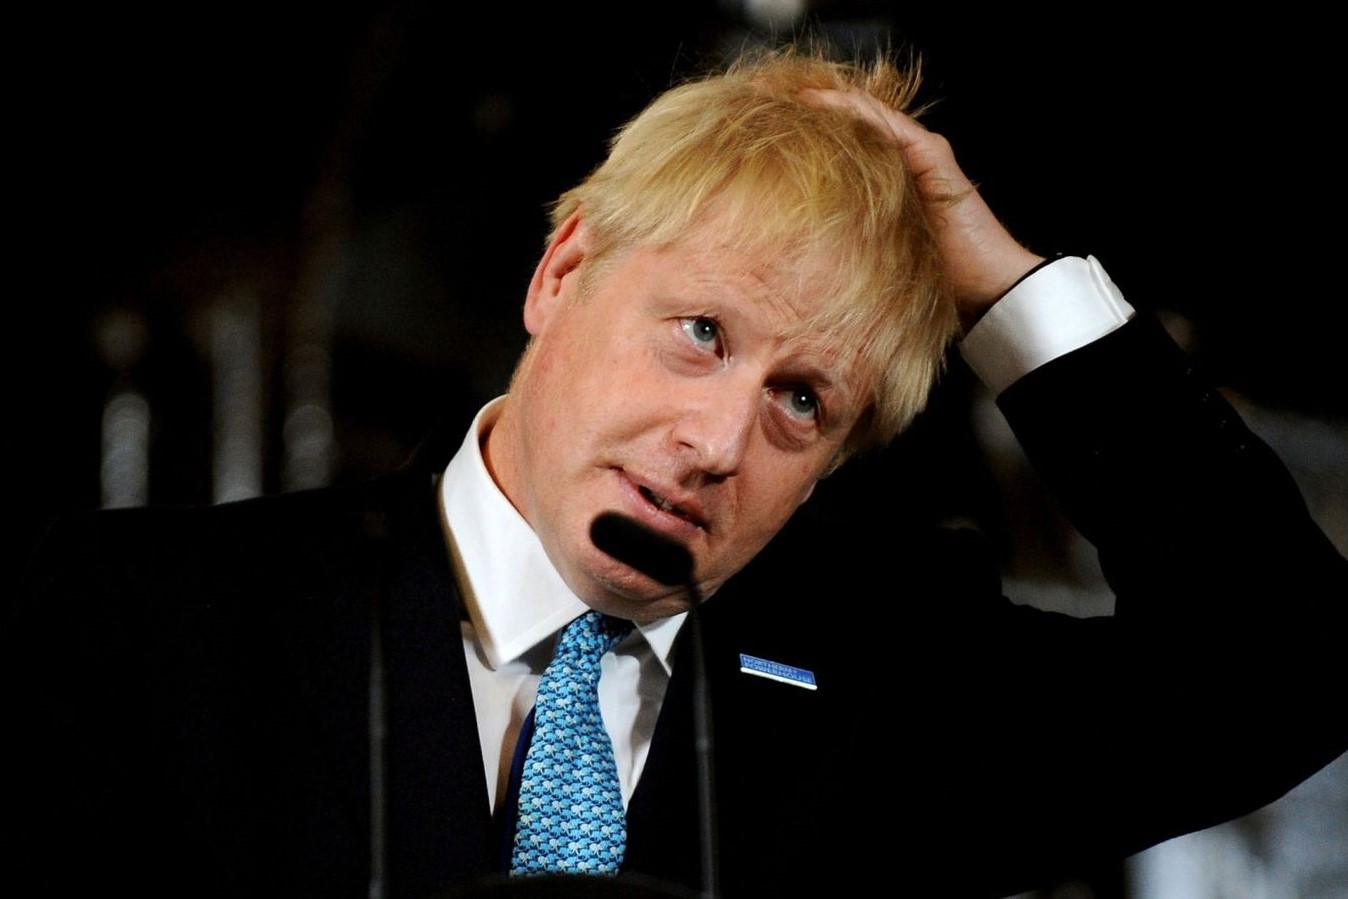 Boris Johnson, UK